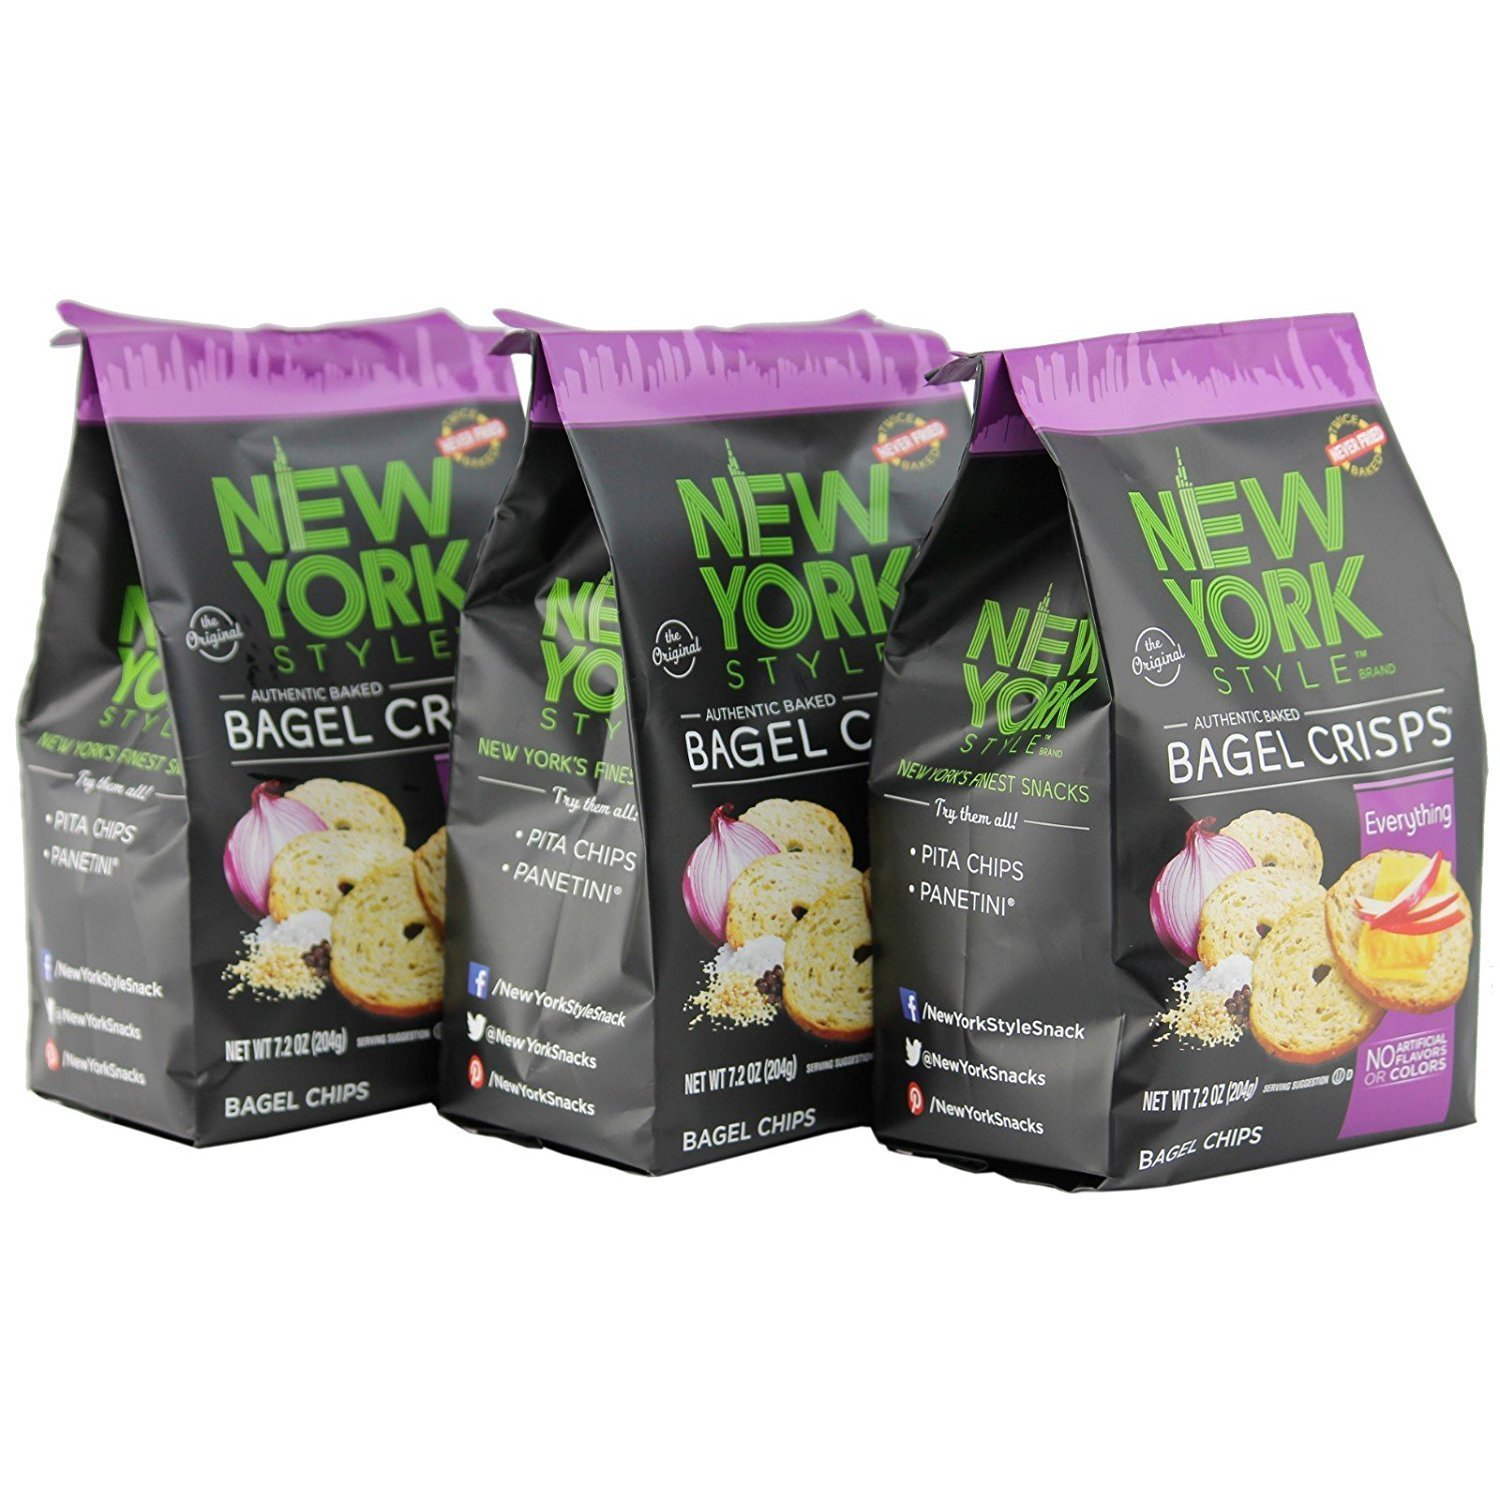 New York Style Bagel Crisps Everything, 7.2 Ounce - (Pack of 12) Twice Baked, Never Fried